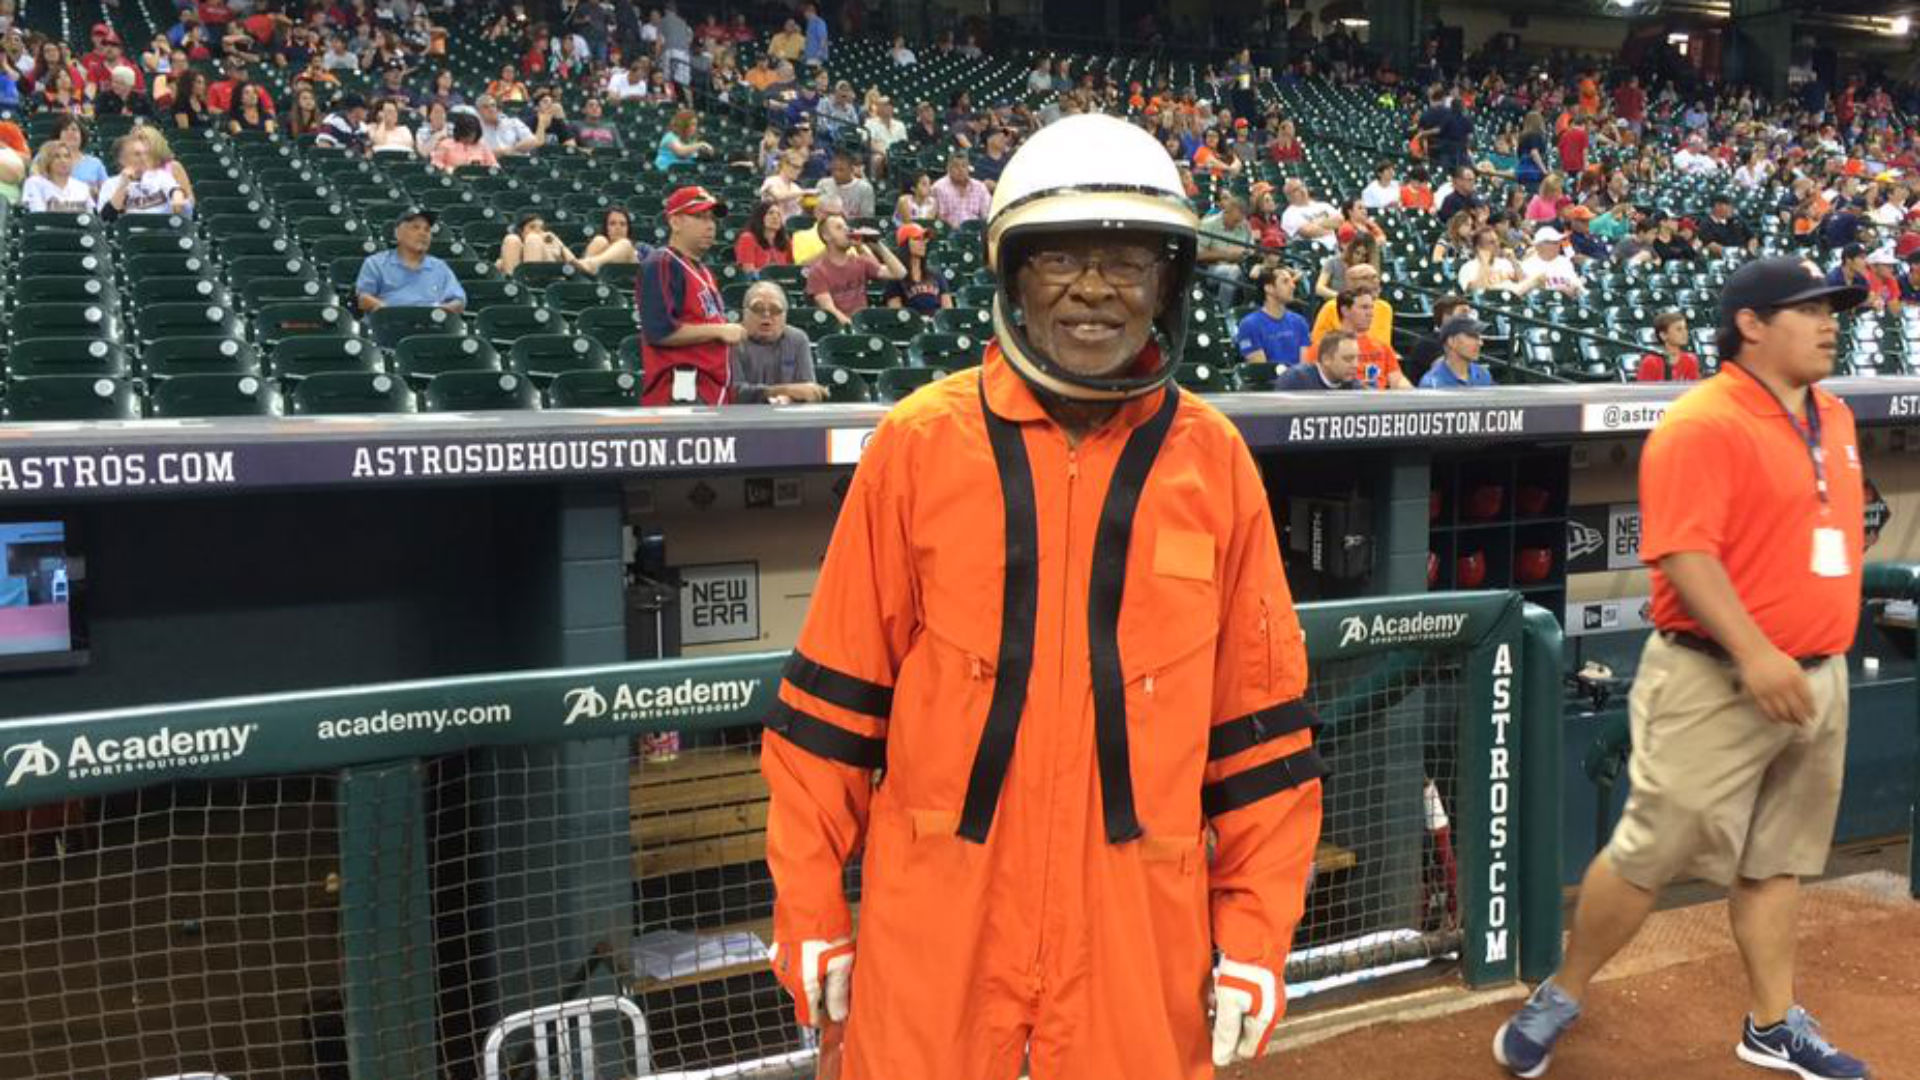 Astros grounds crew dresses up as astronauts on throwback night